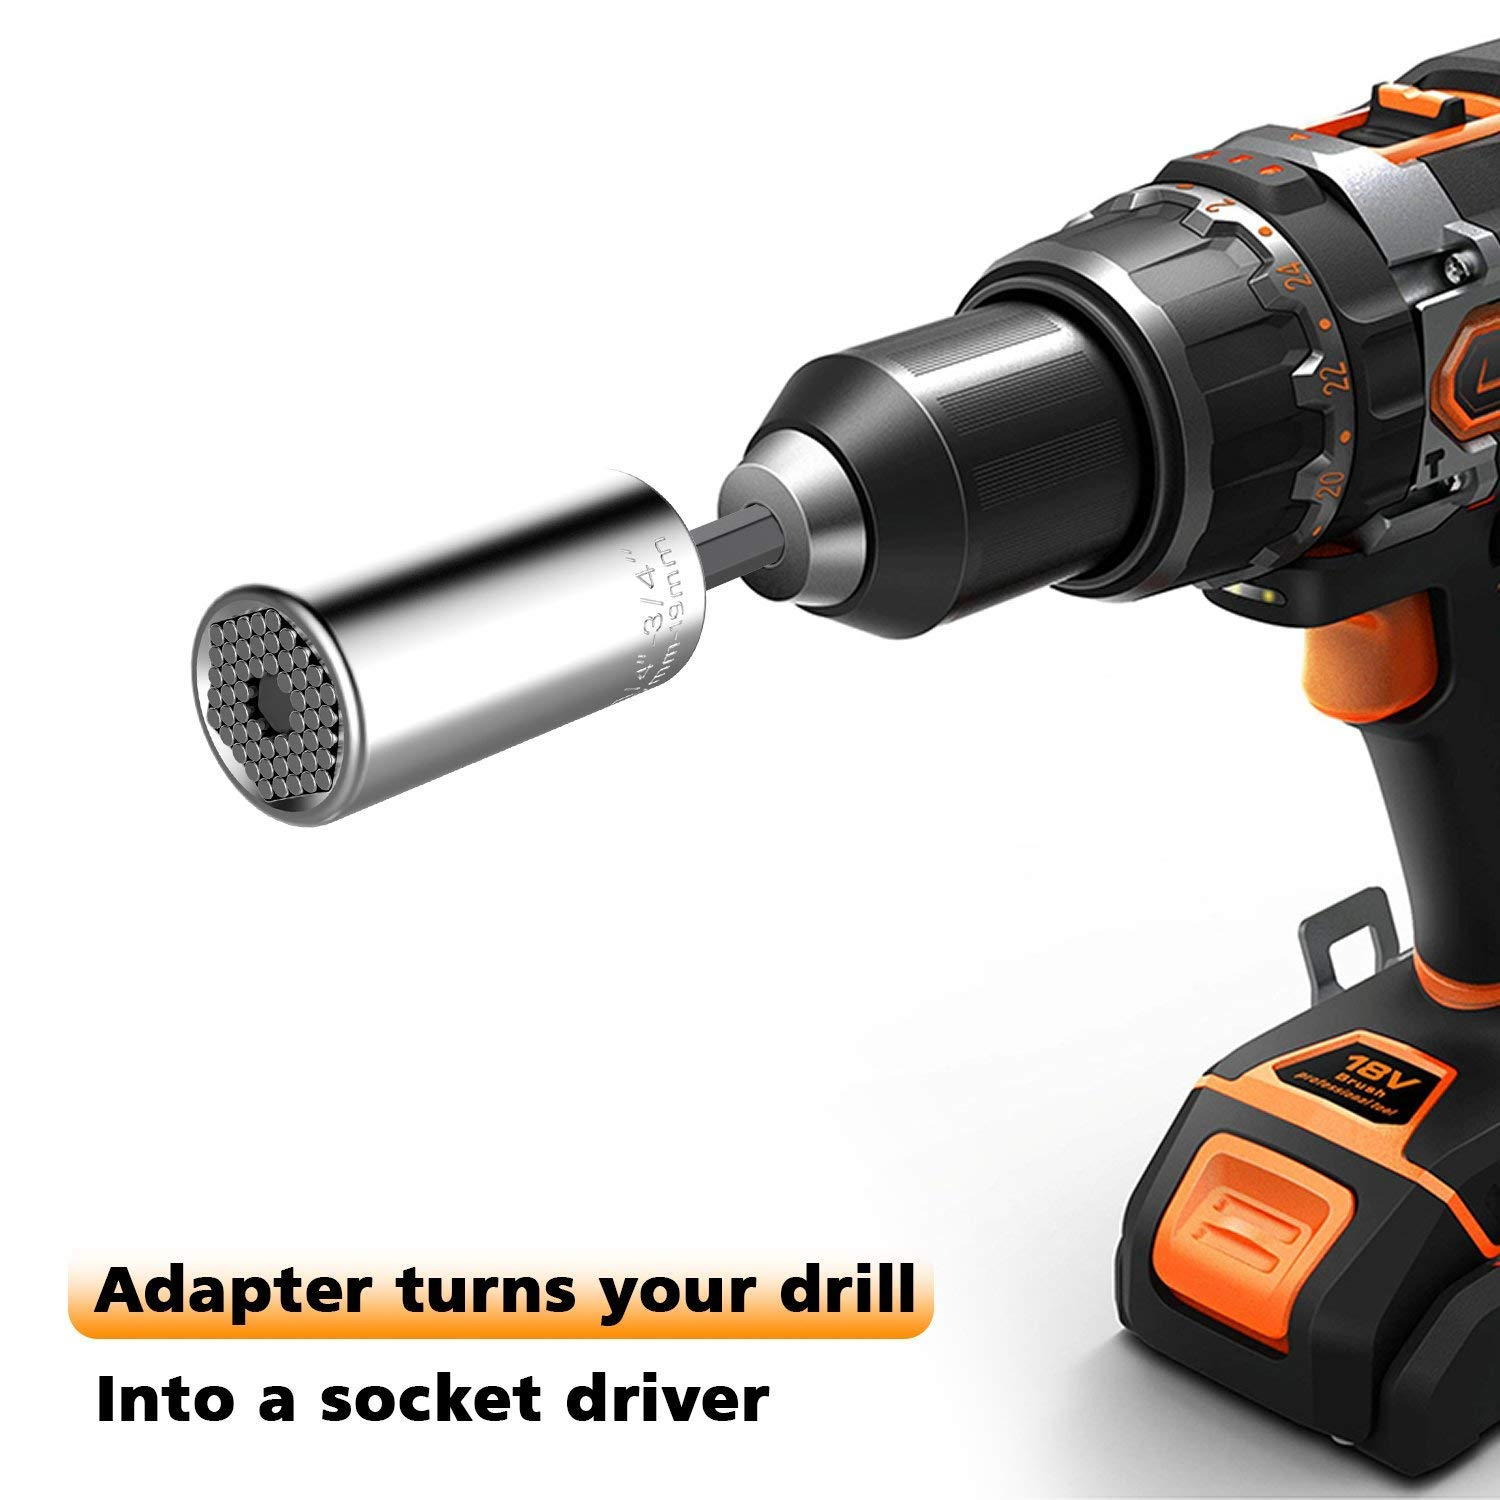 ,Multi-Function Grip,Ratchet Tool Set,Power Drill Adapter,Tools Gifts for Dad,Father,Men,Him,Husband,Boyfriend,DIY Handyman,Women,Birthday Gift 7-19mm Gifts for Men,Universal Socket Wrench